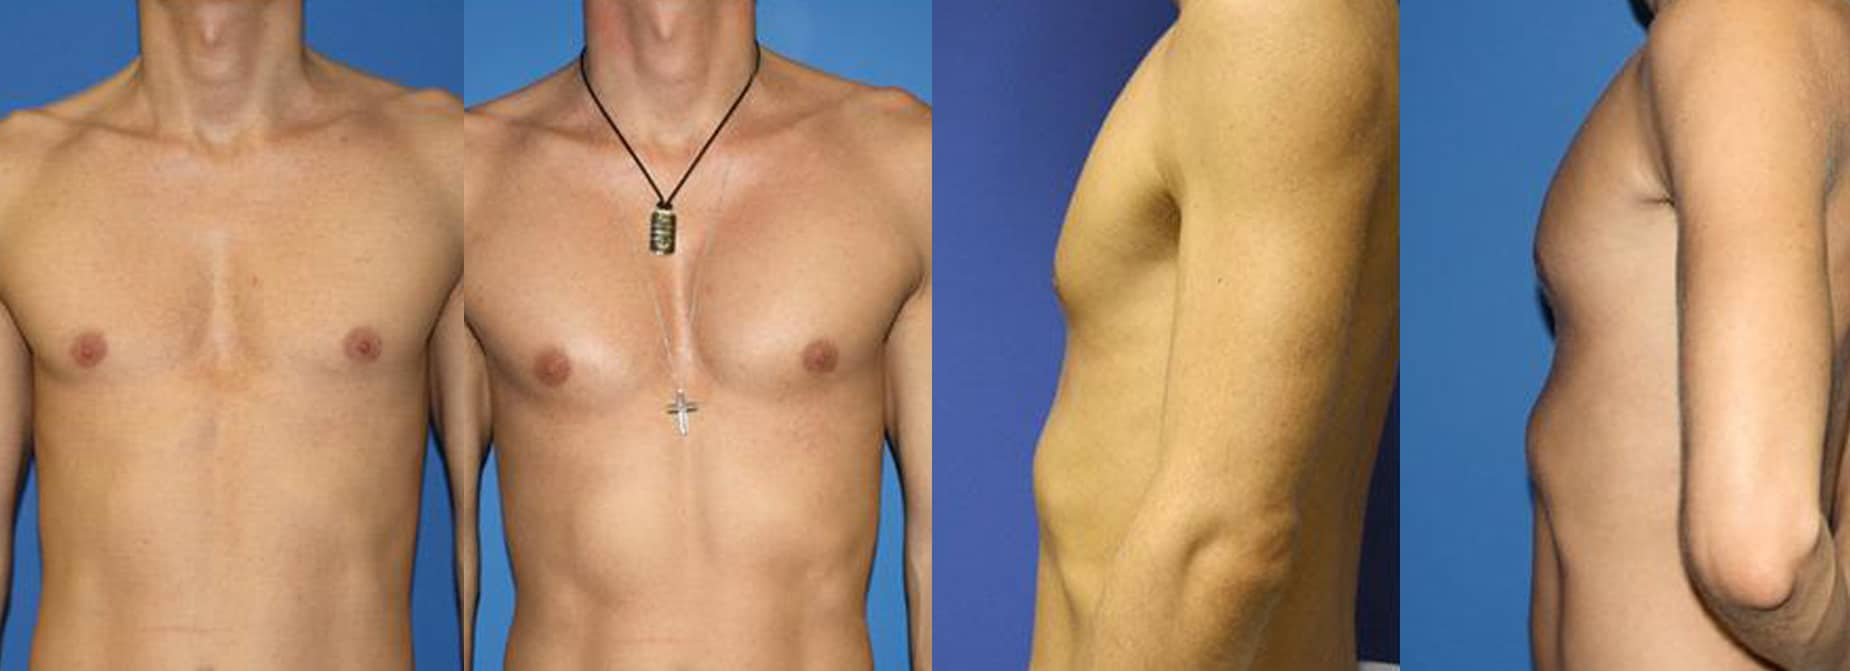 Before / After images of a young man after body contouring procedure. After the procedure, six packs are more visible and chest and other muscles are more prominent, giving an athletic outlook, New York, NY